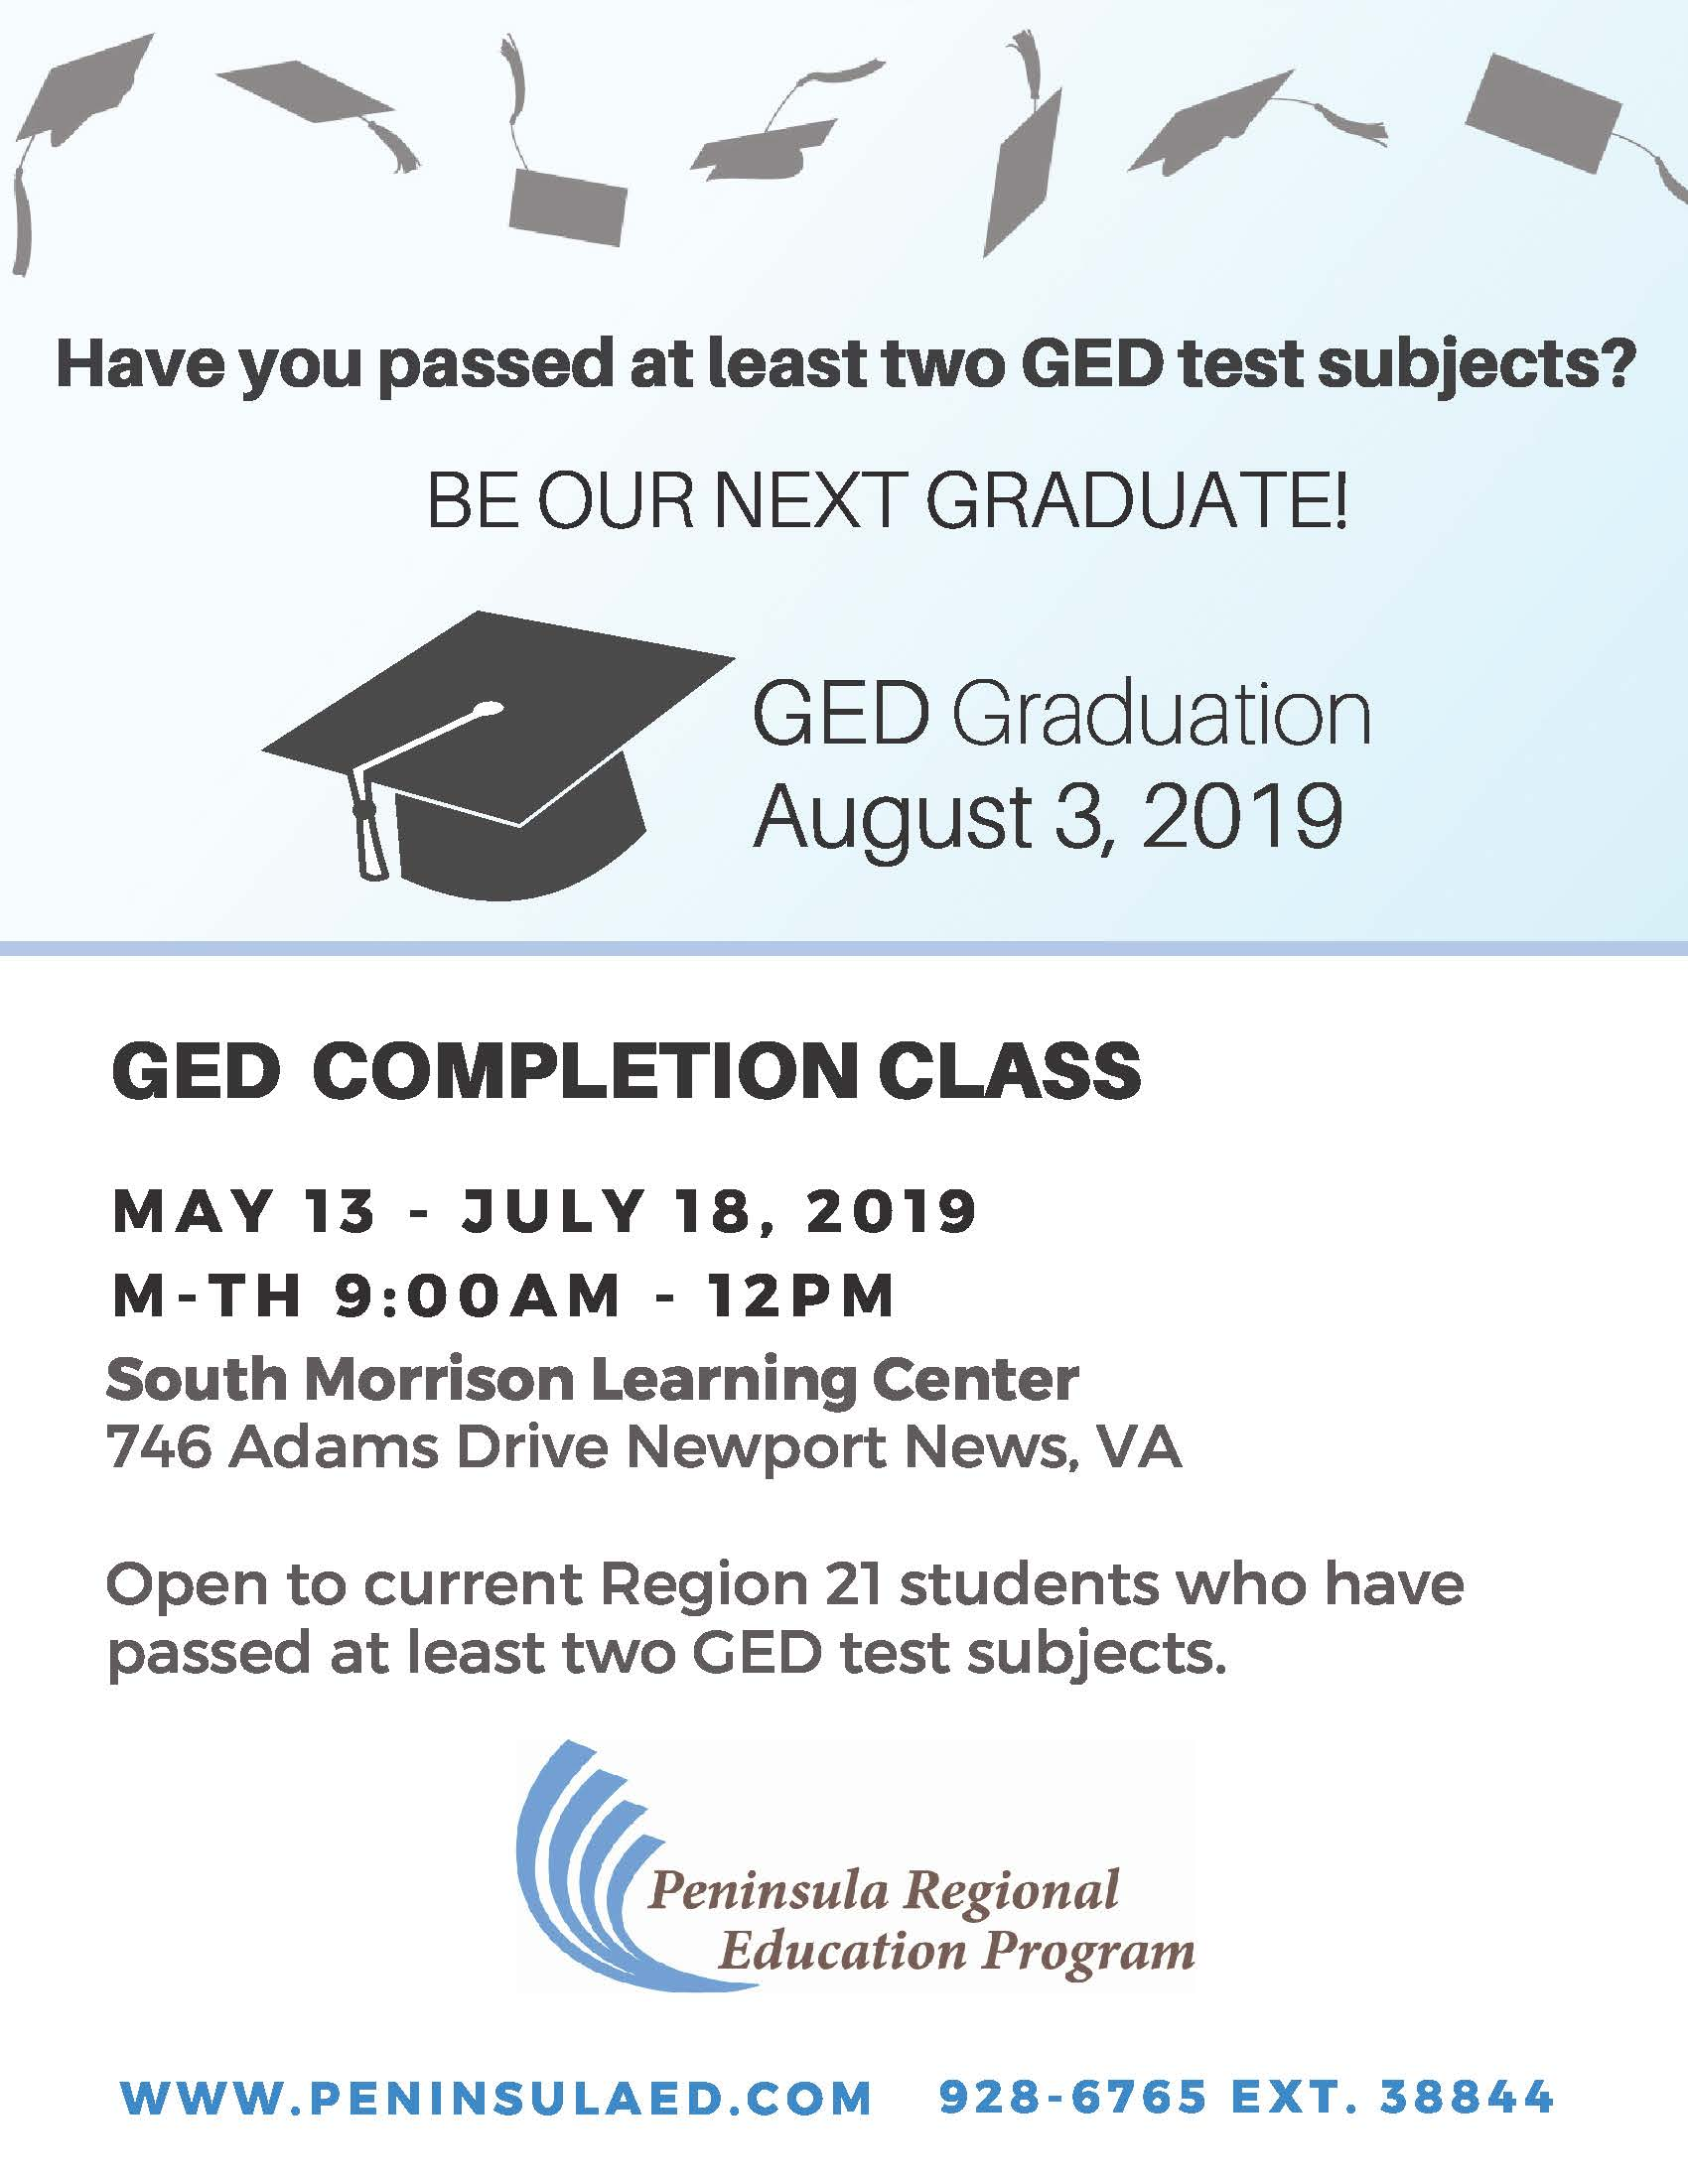 GED Completion Flyer 2019.jpg